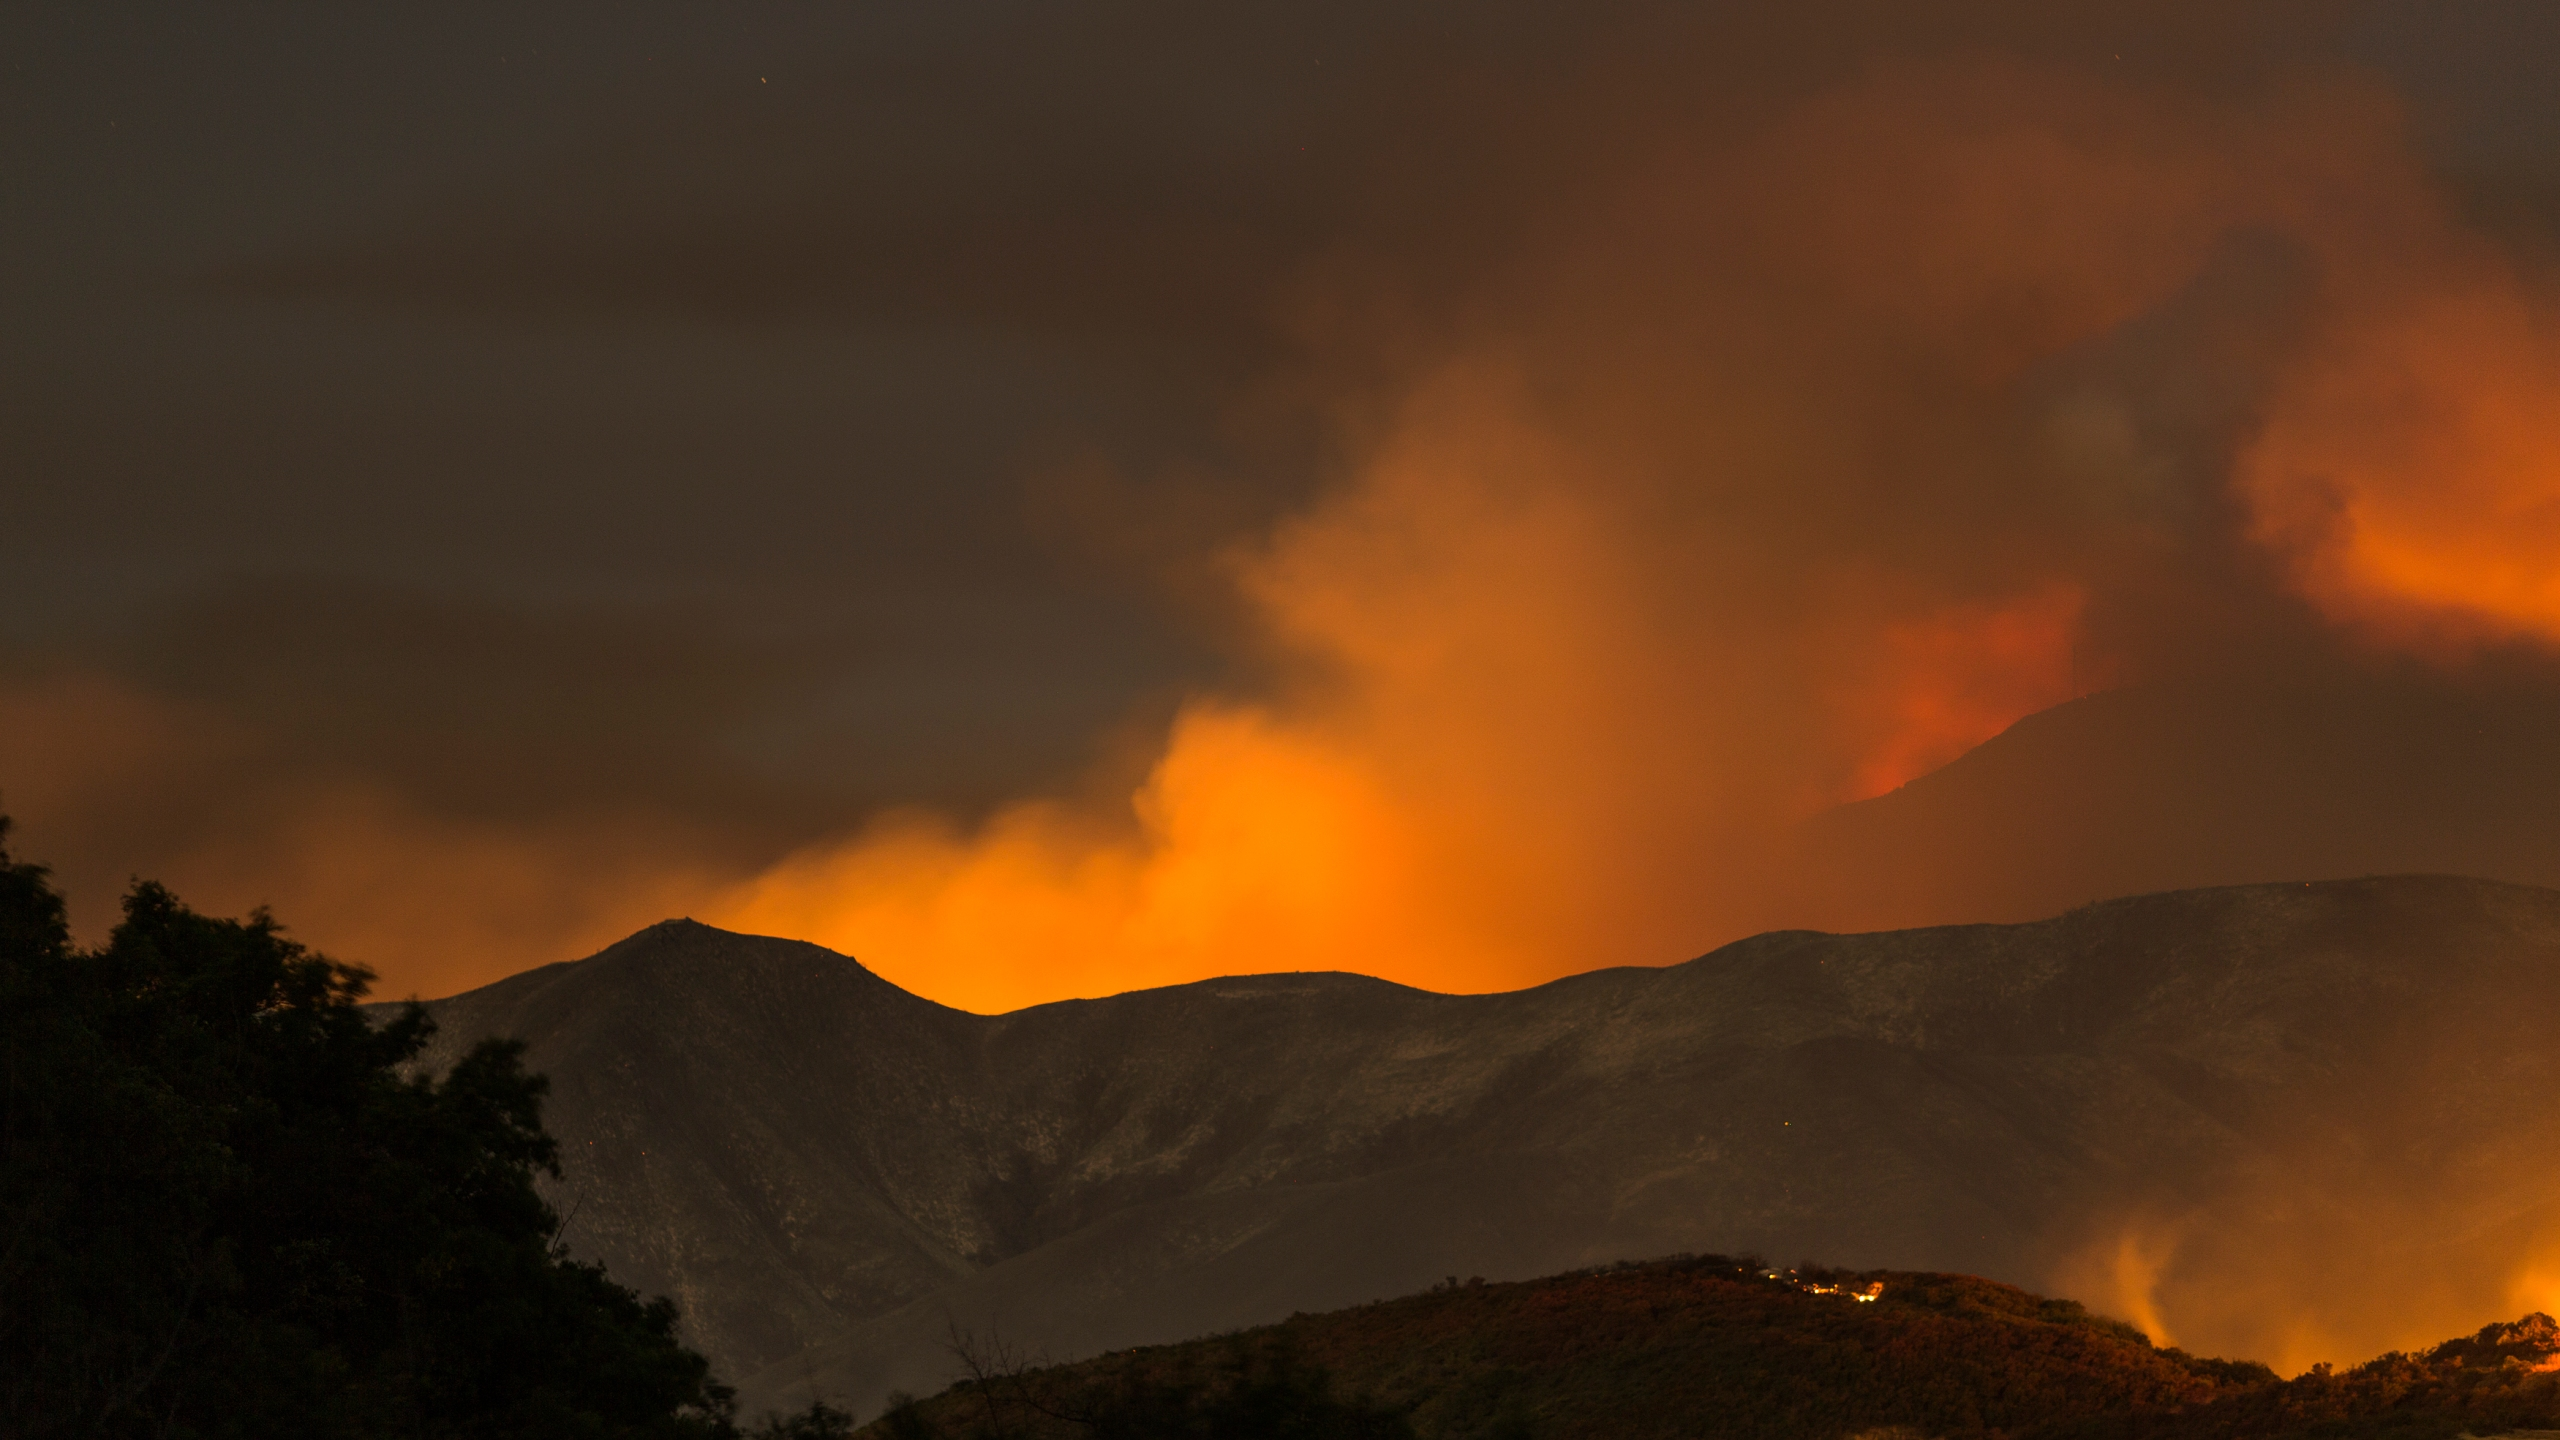 The Whittier Fire burns through the night on July 9, 2017 near Santa Barbara. (Credit: David McNew/Getty Images)